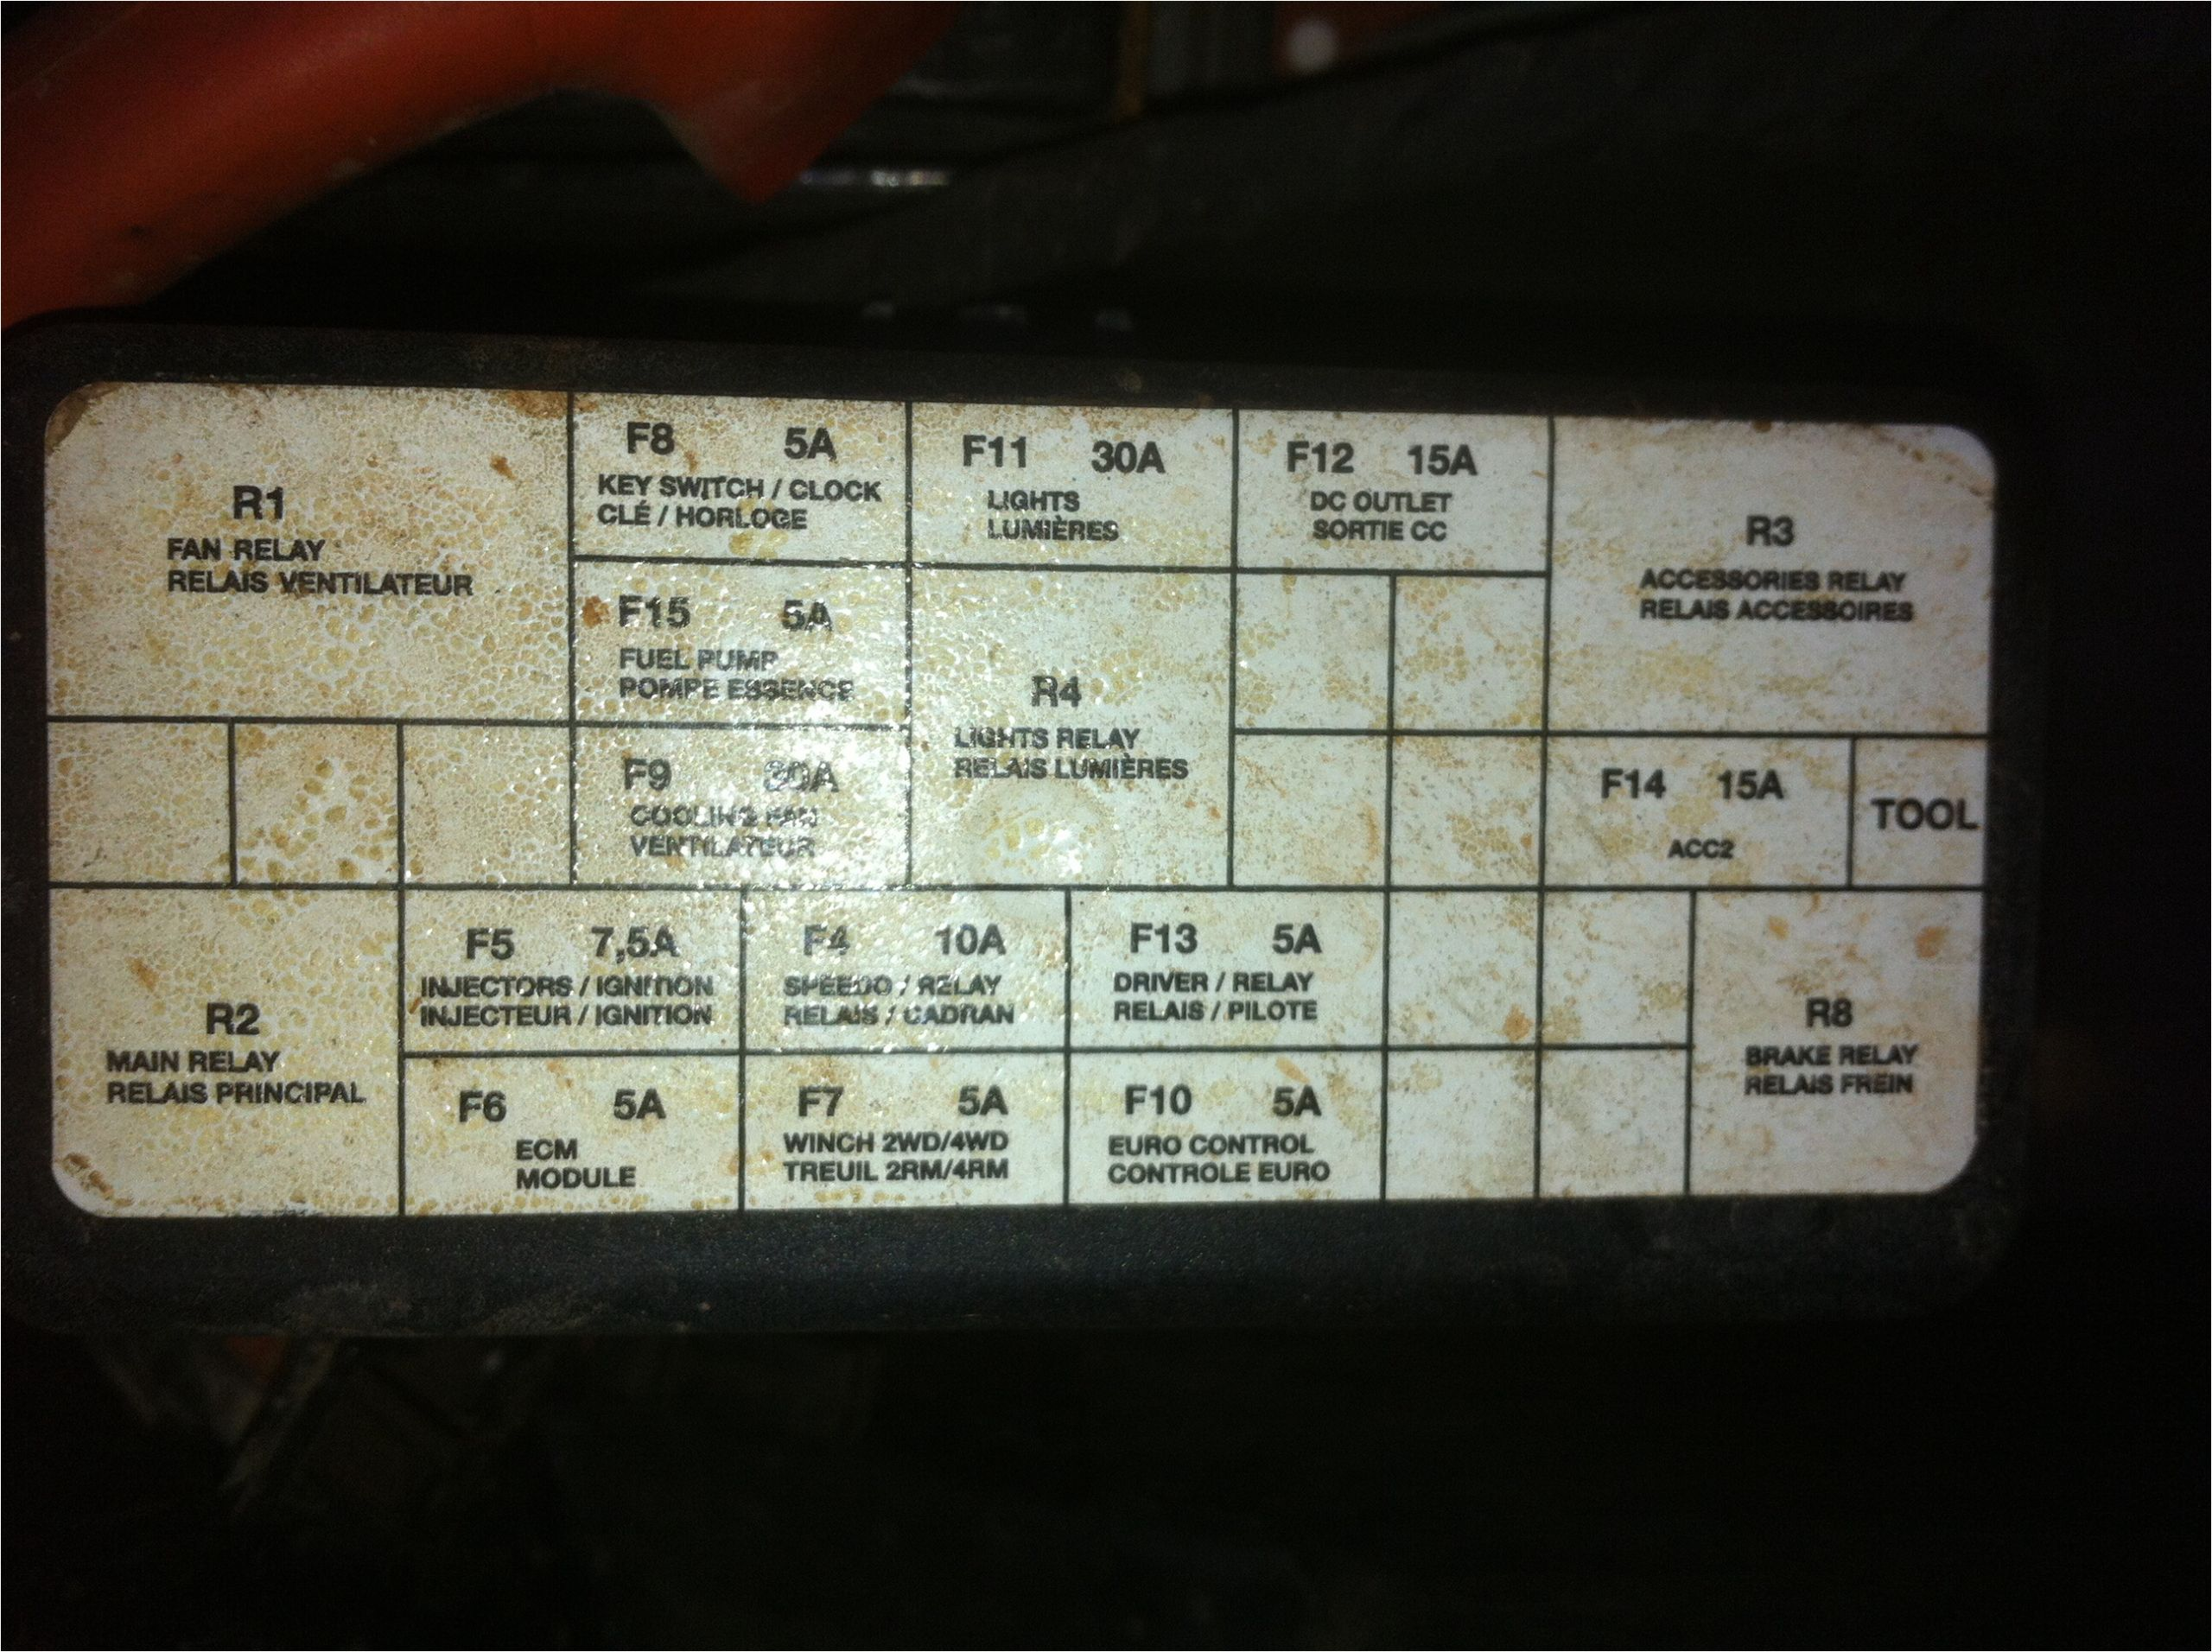 13042d1395592781 fuse box cover help please image jpg